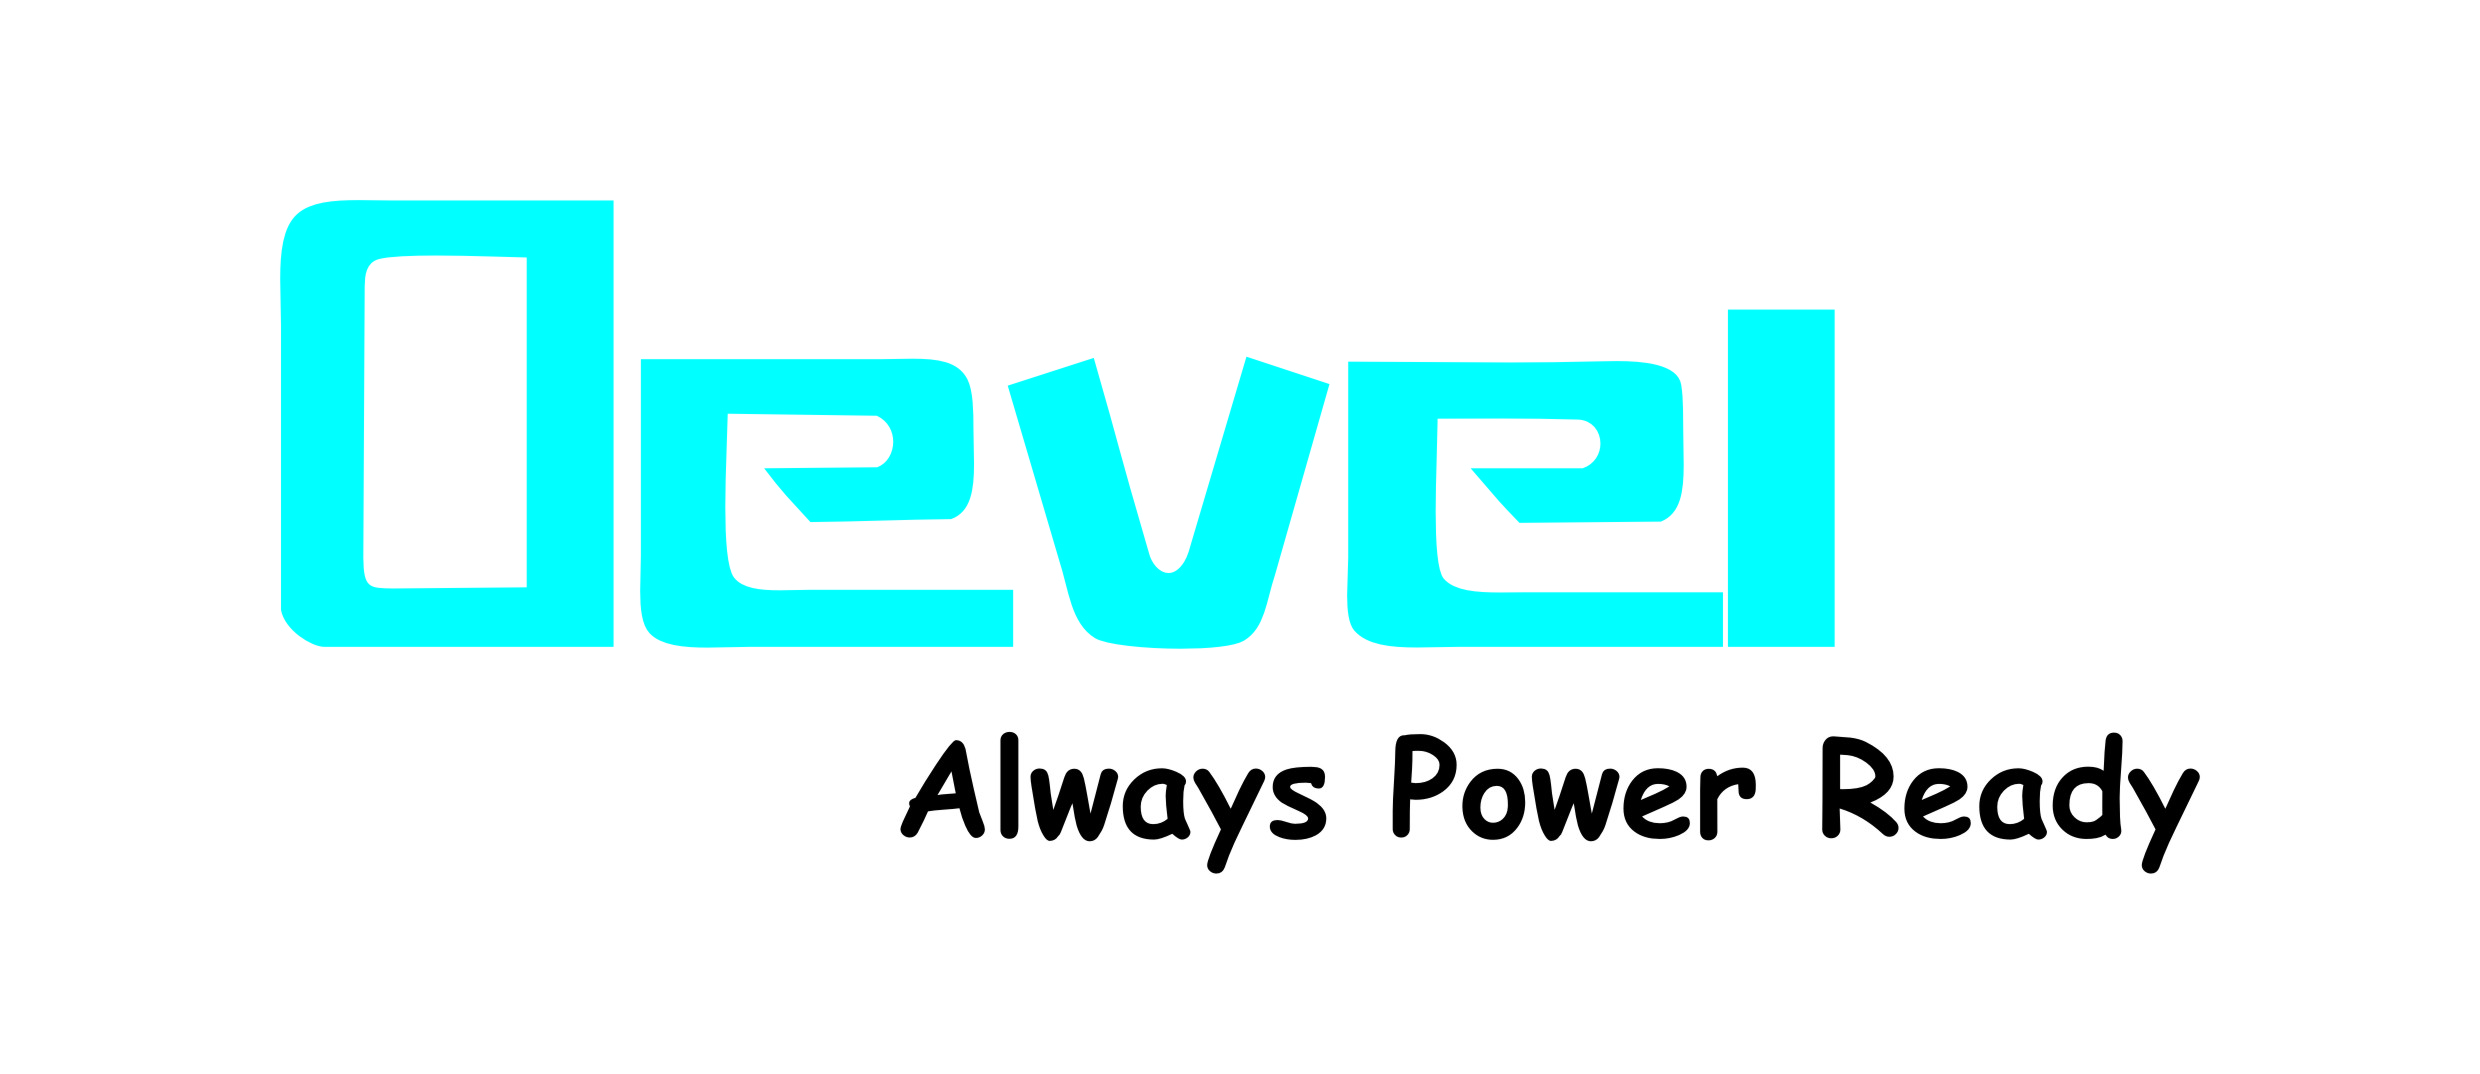 SuZhou Develpower Energy Equipment Co., Ltd